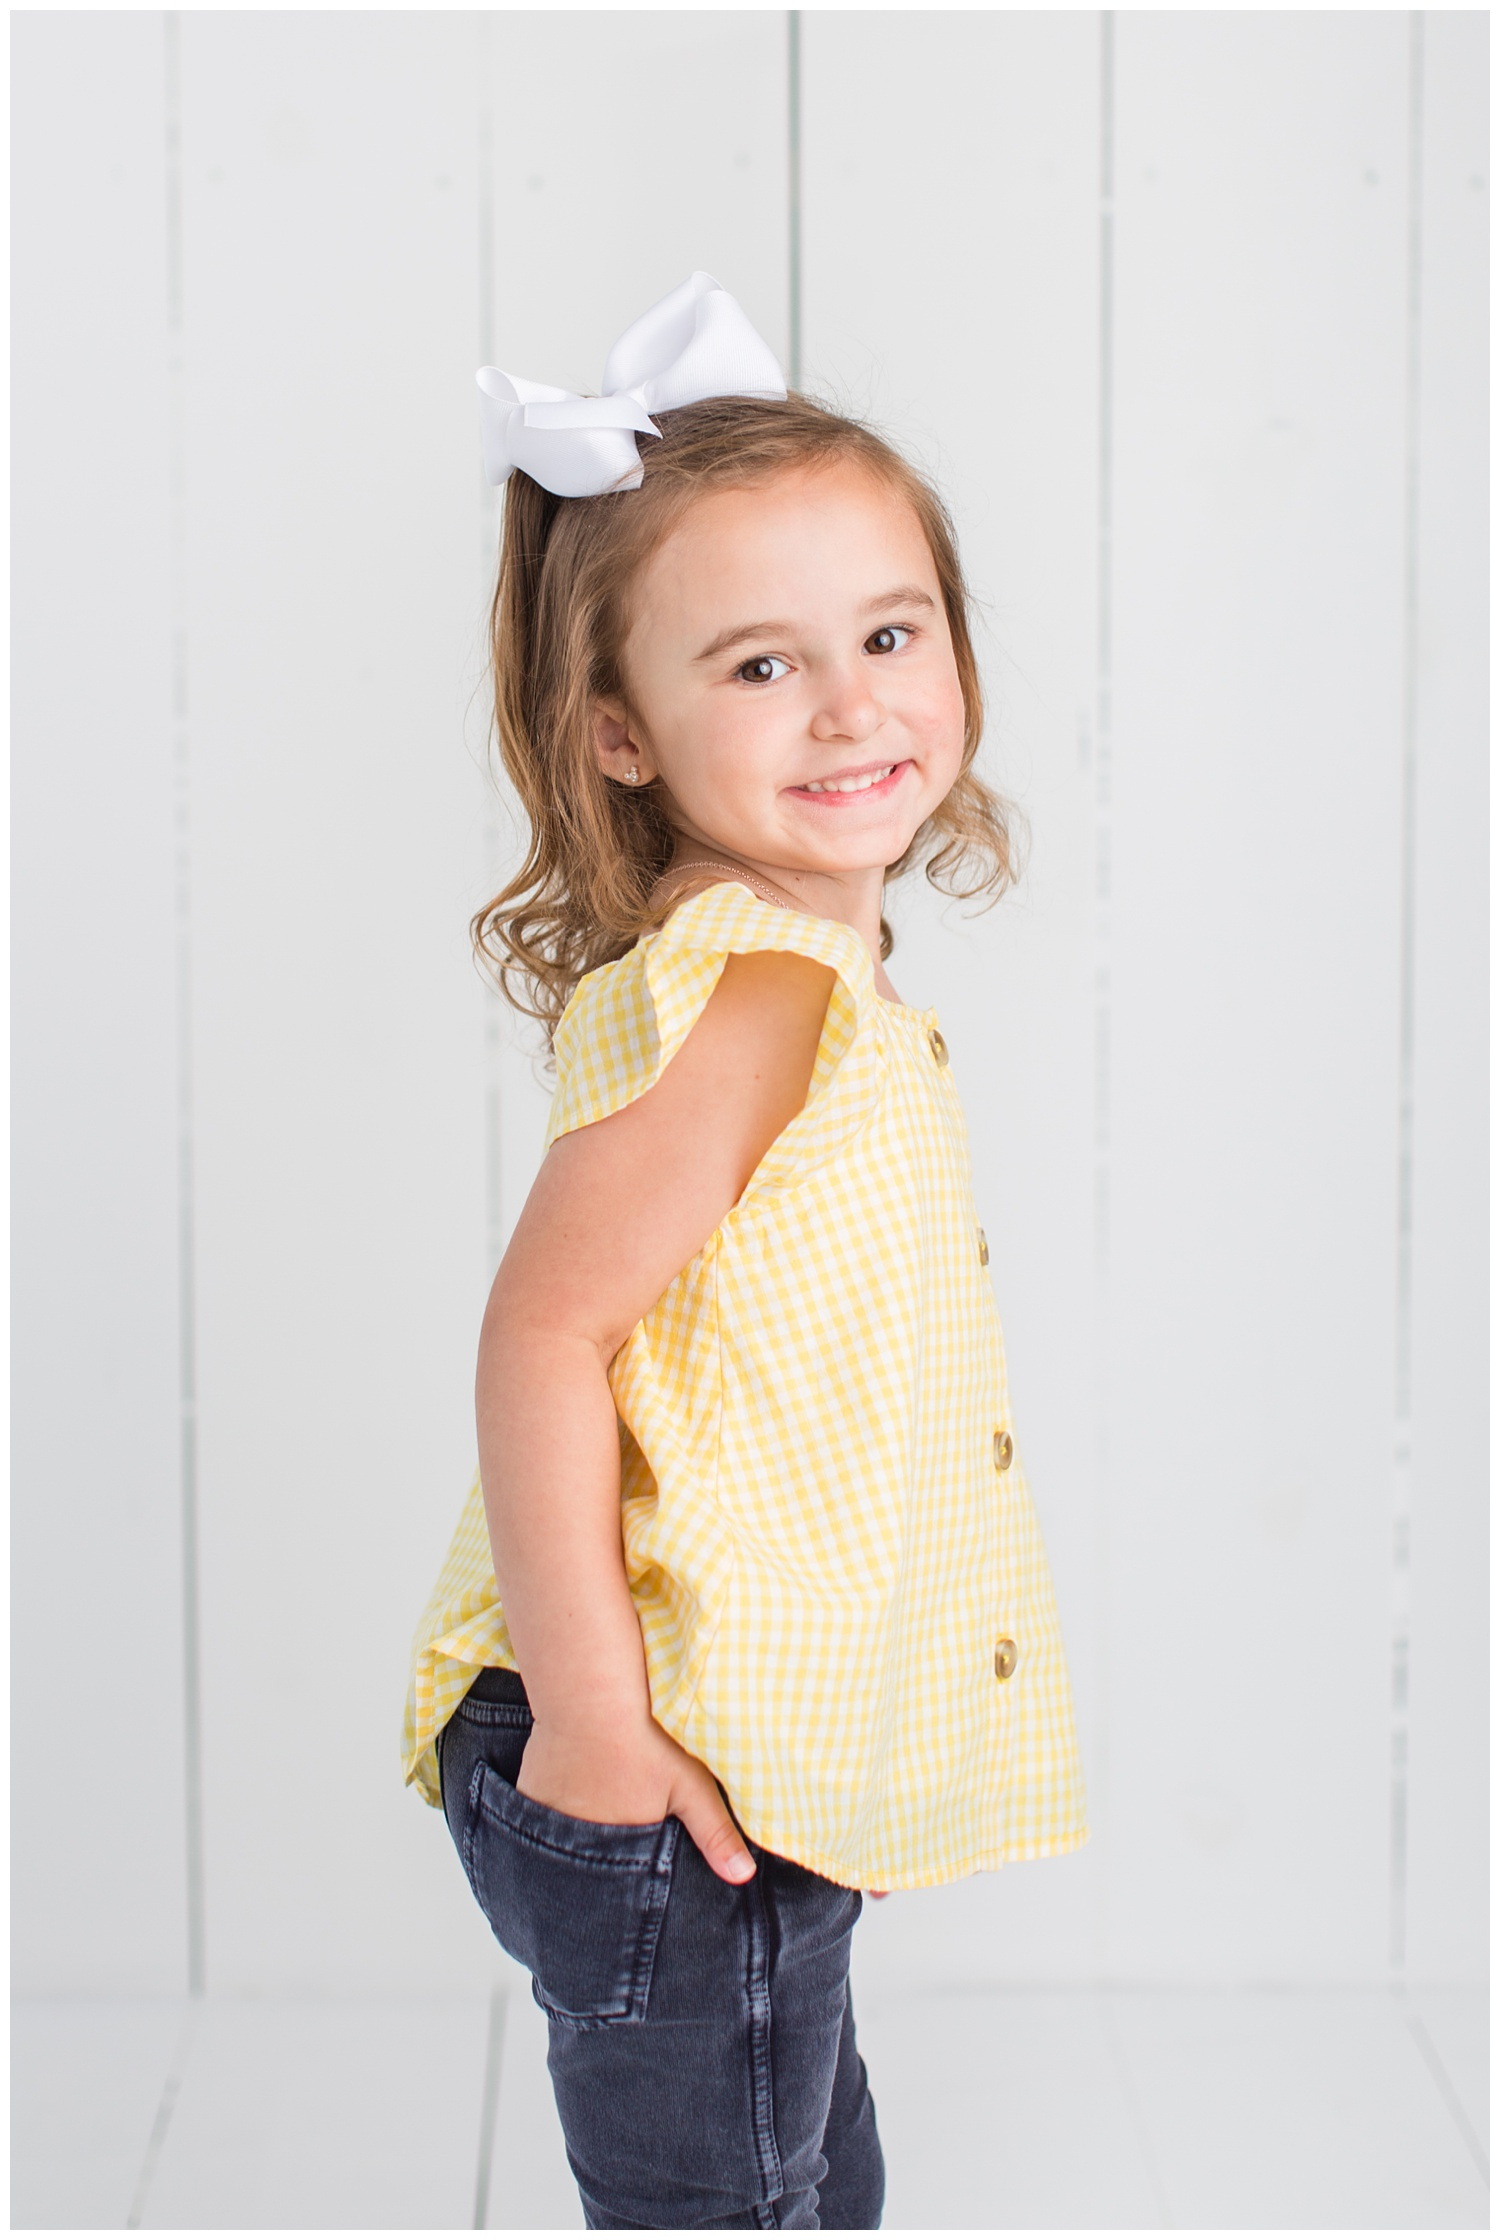 4 Year old Sadie wearing a yellow gingham top posing with her hand in her back pocket on a white wood background.